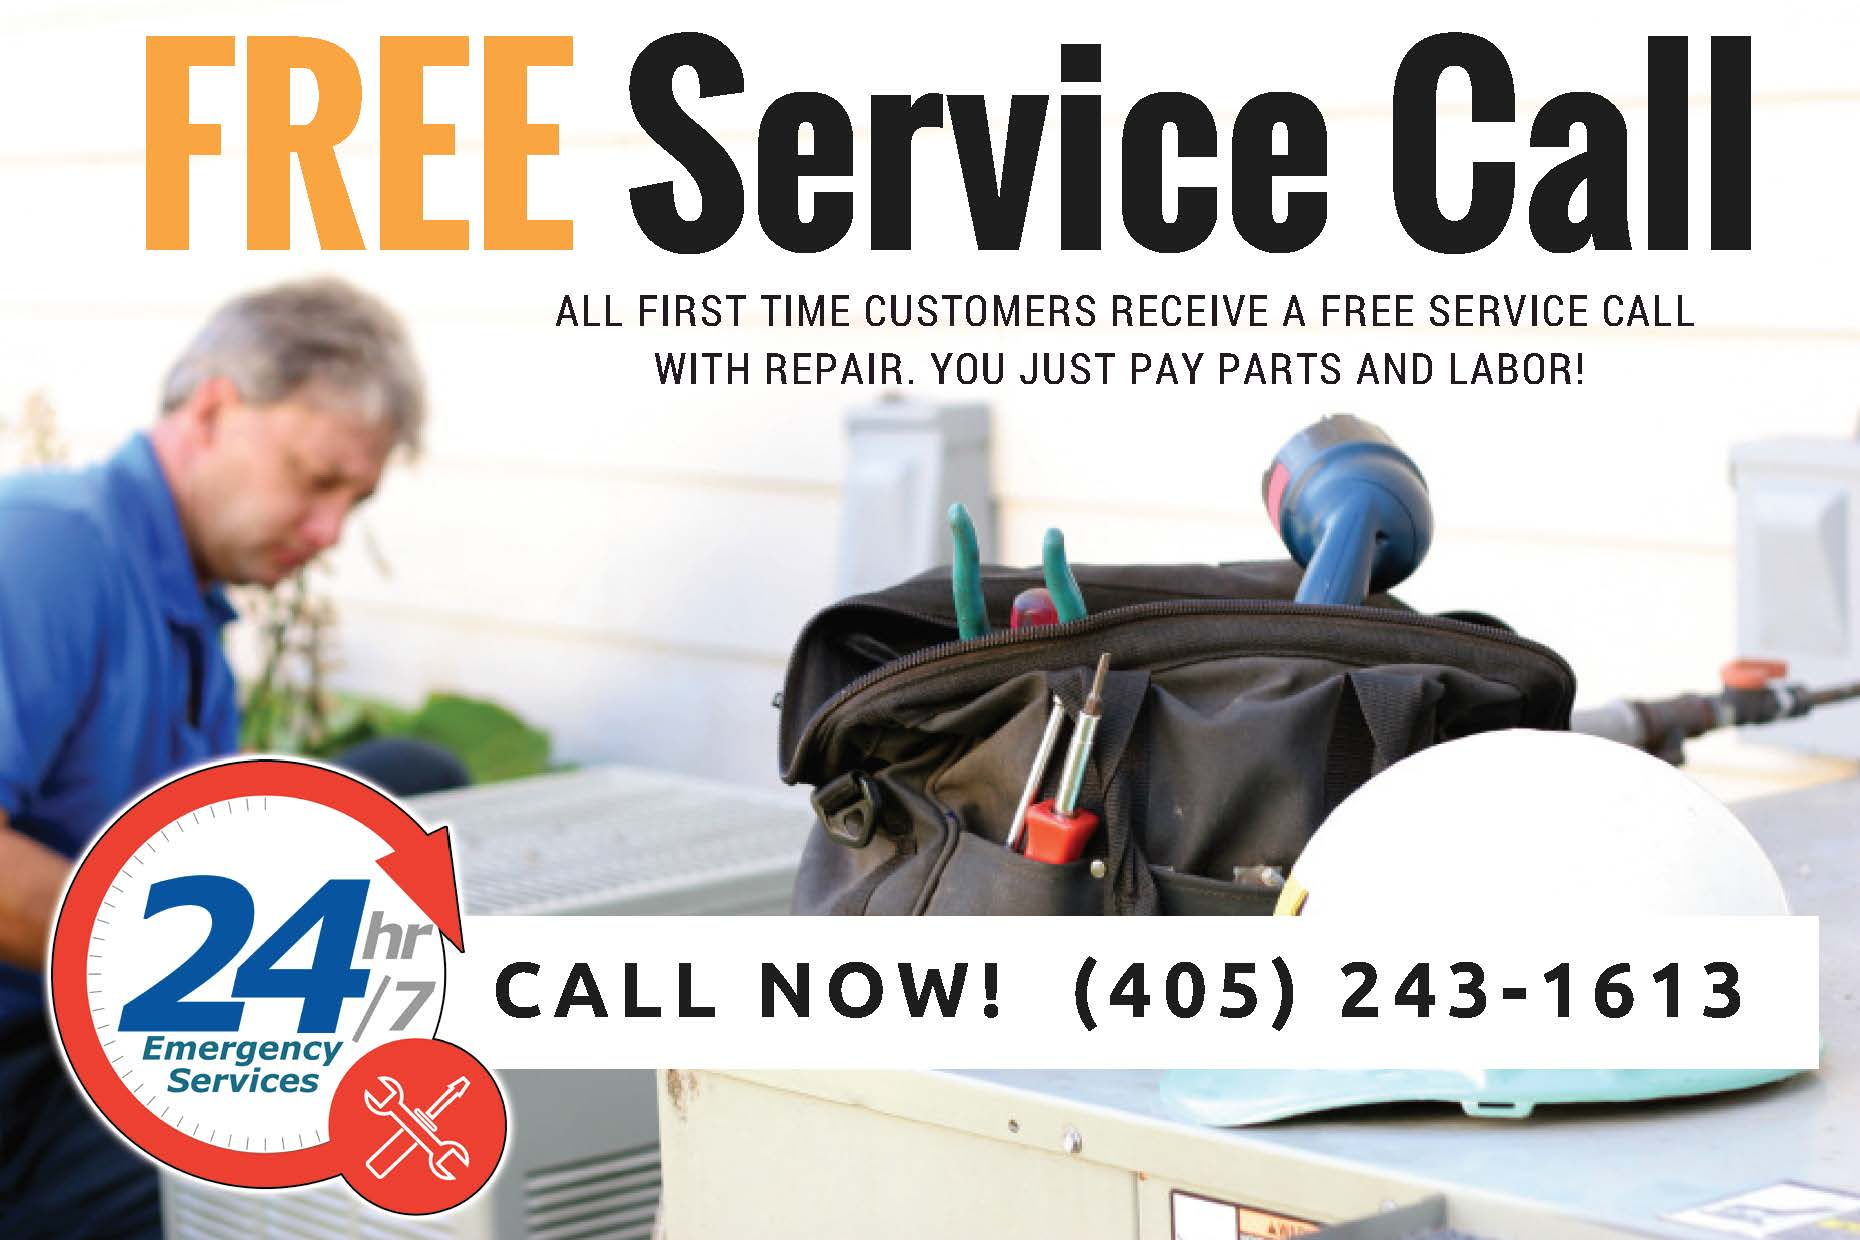 Free Heater or Furnace Service Call for Deer Creek Residents